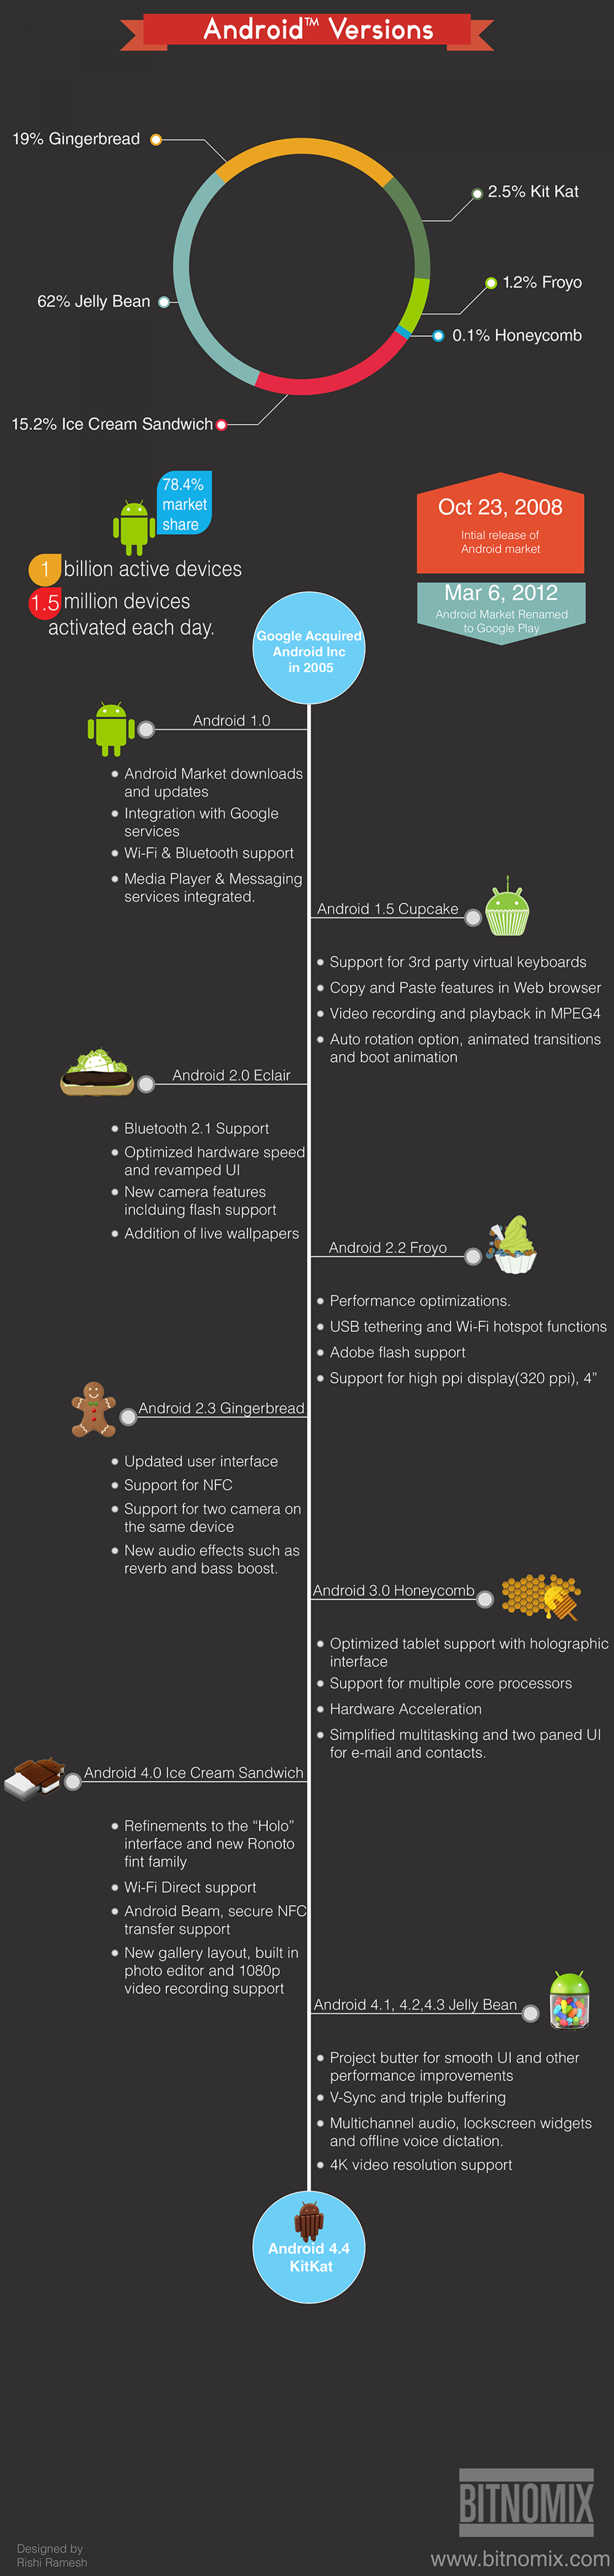 Android Versions Infographic